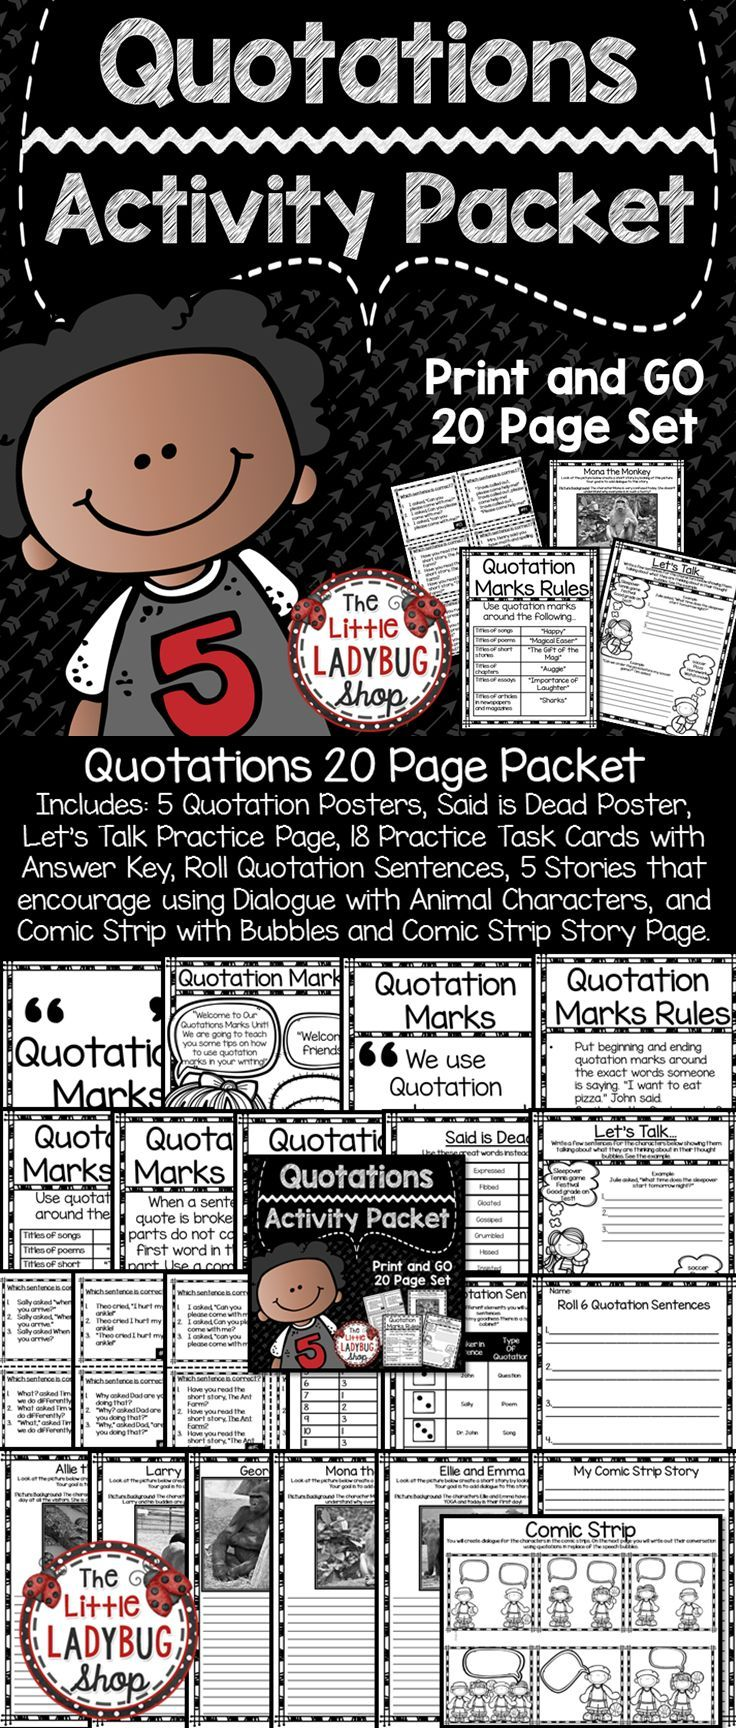 In this Quotation Marks Packet you will find tools to assist you in teaching Quotation Marks. I have gathered components to get you started on elements of Quotation Marks. My students struggle in learning how to use Quotation Marks correctly and this has helped them in adding dialogue to their writing. Many of these components were perfect for small group, literacy stations, center work, homework, and independent work.